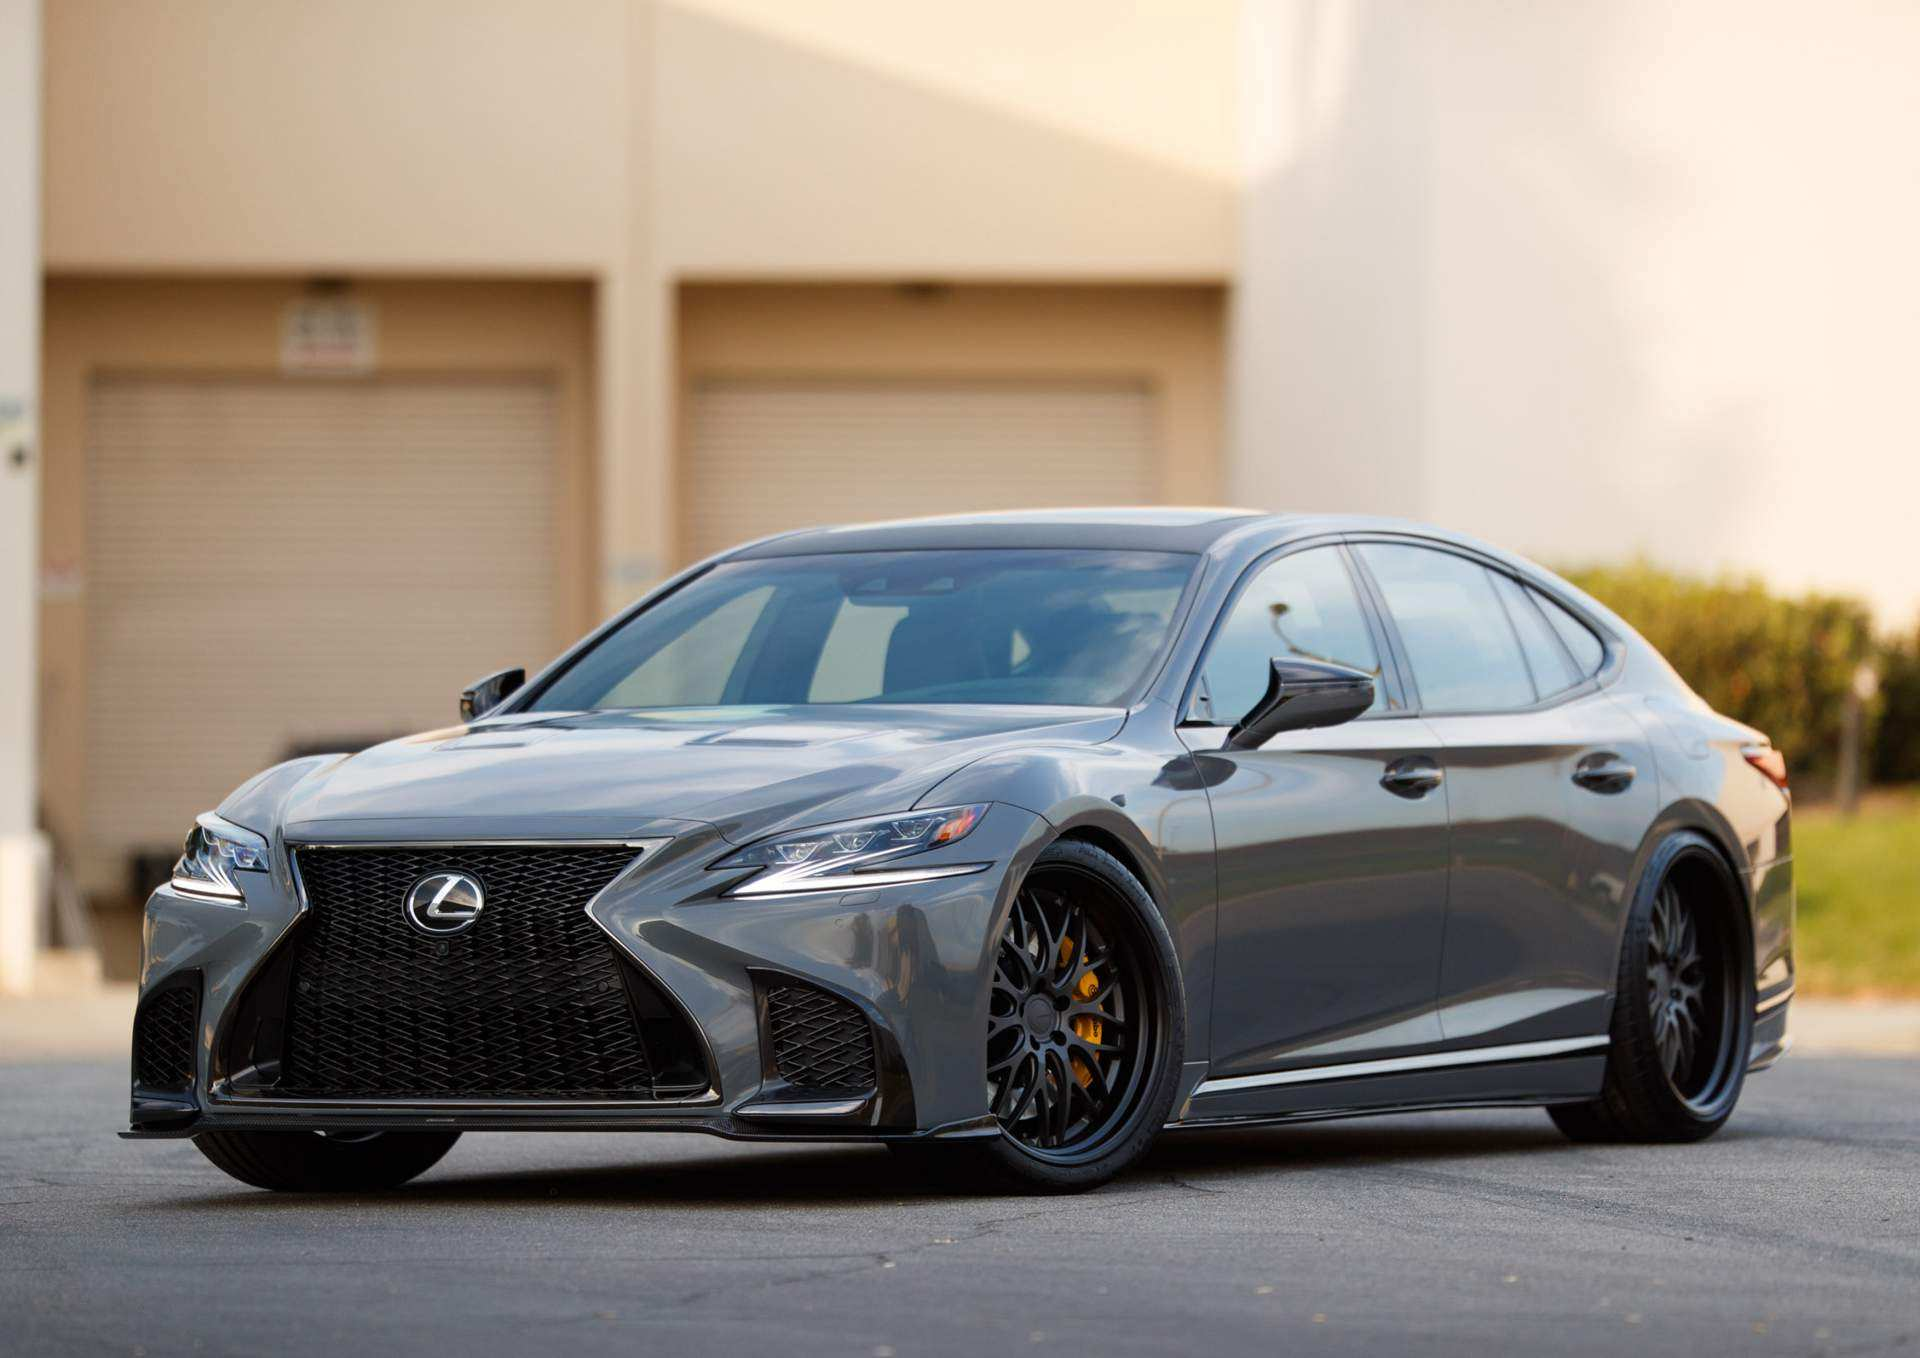 18 Gallery of 2019 Lexus Concept Rumors with 2019 Lexus Concept